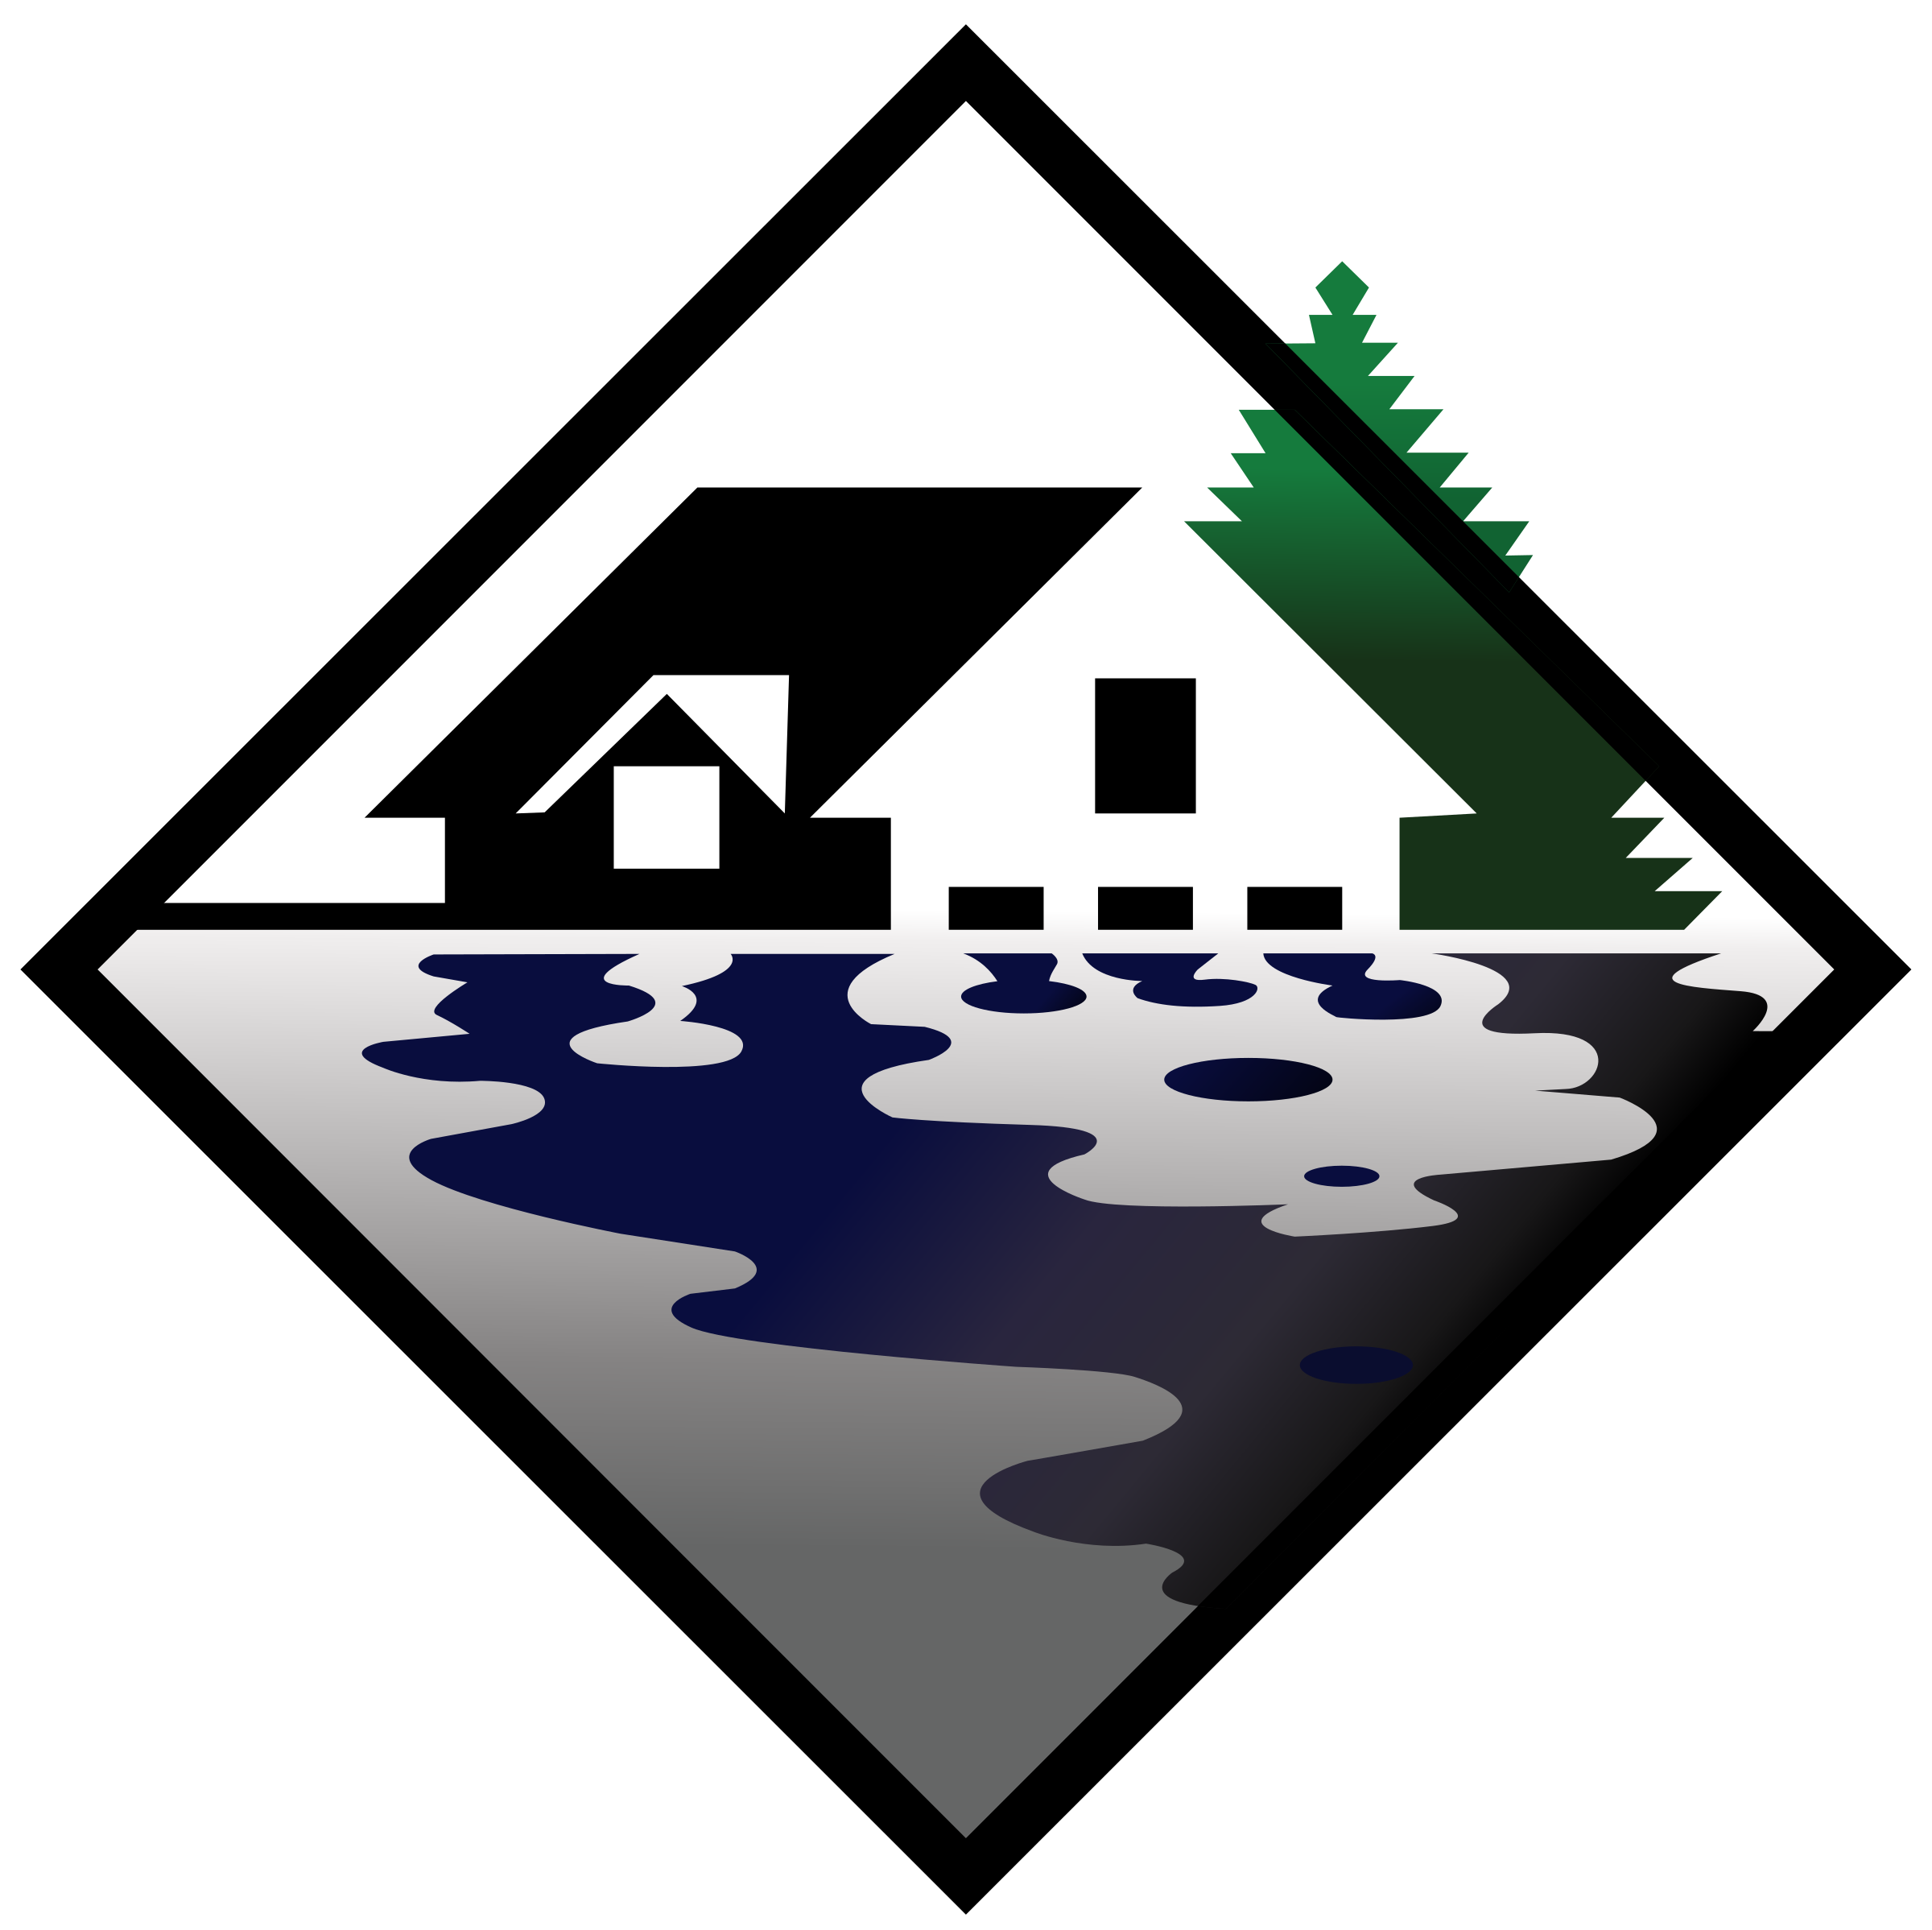 Hurricane clipart hurricane katrina. Revisited icons png free